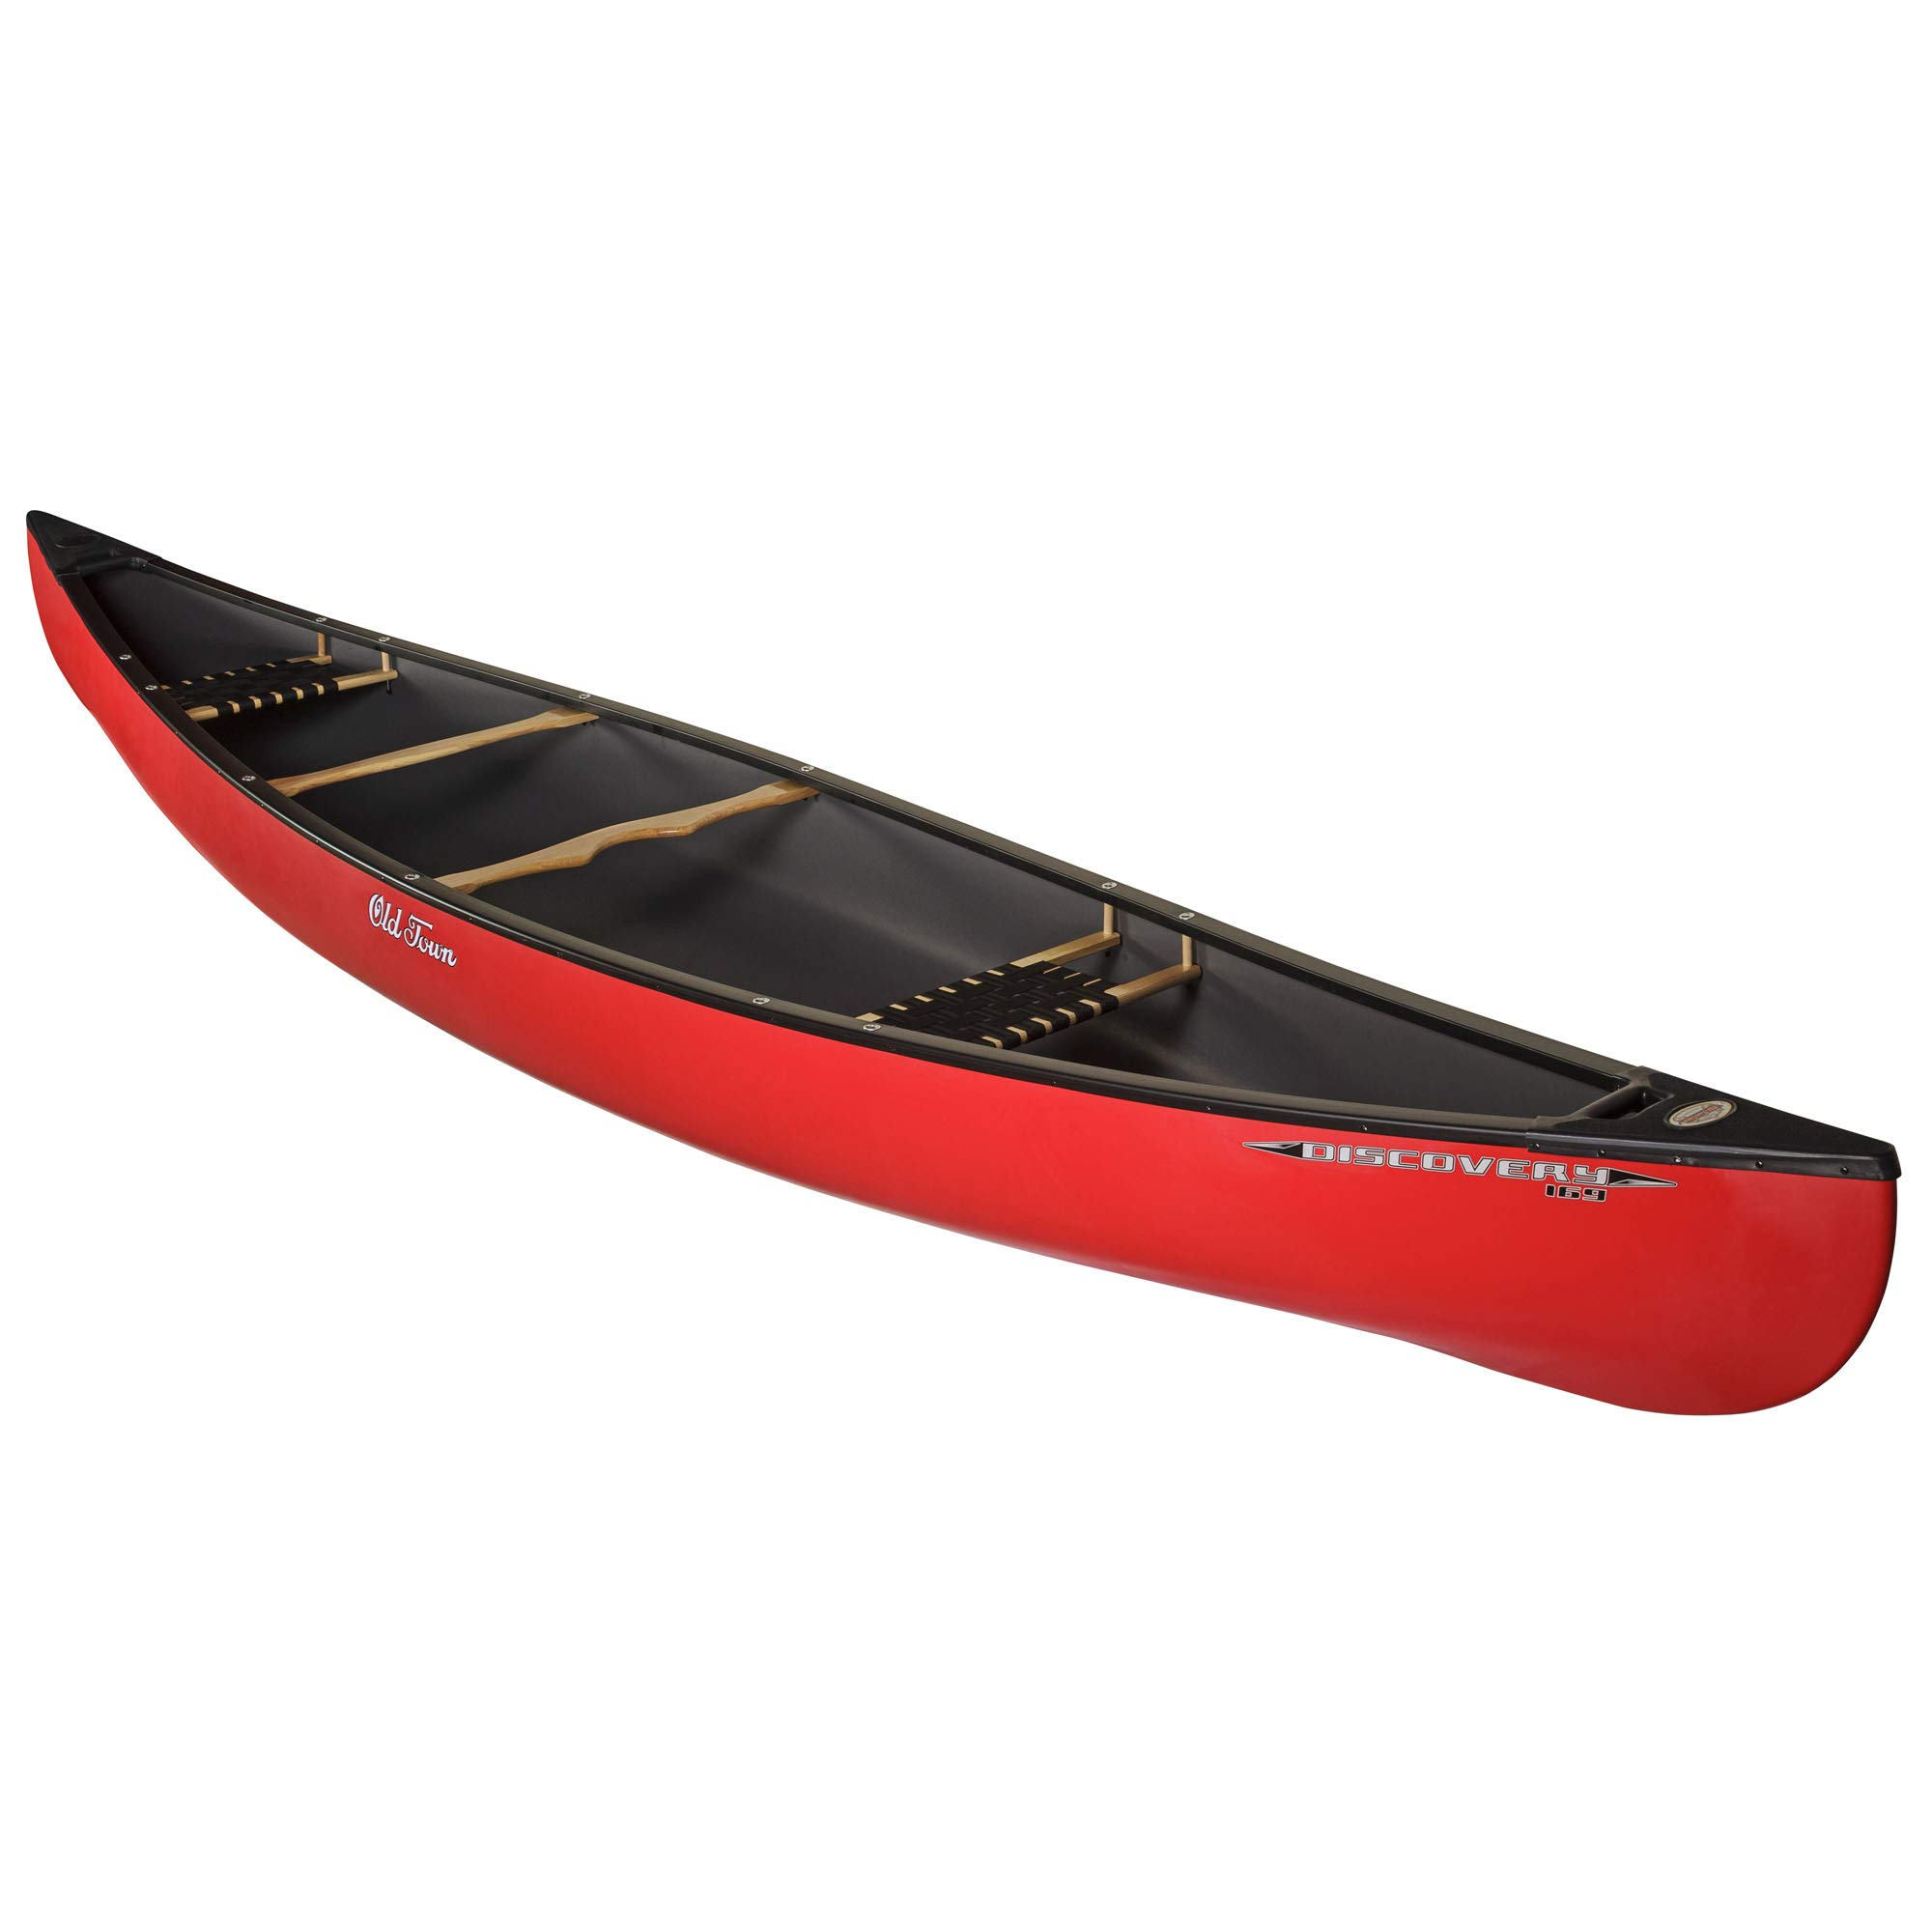 Old Town Discovery 169 Recreational Canoe, Red, 16 Feet 9 Inches by Old Town Canoes & Kayaks